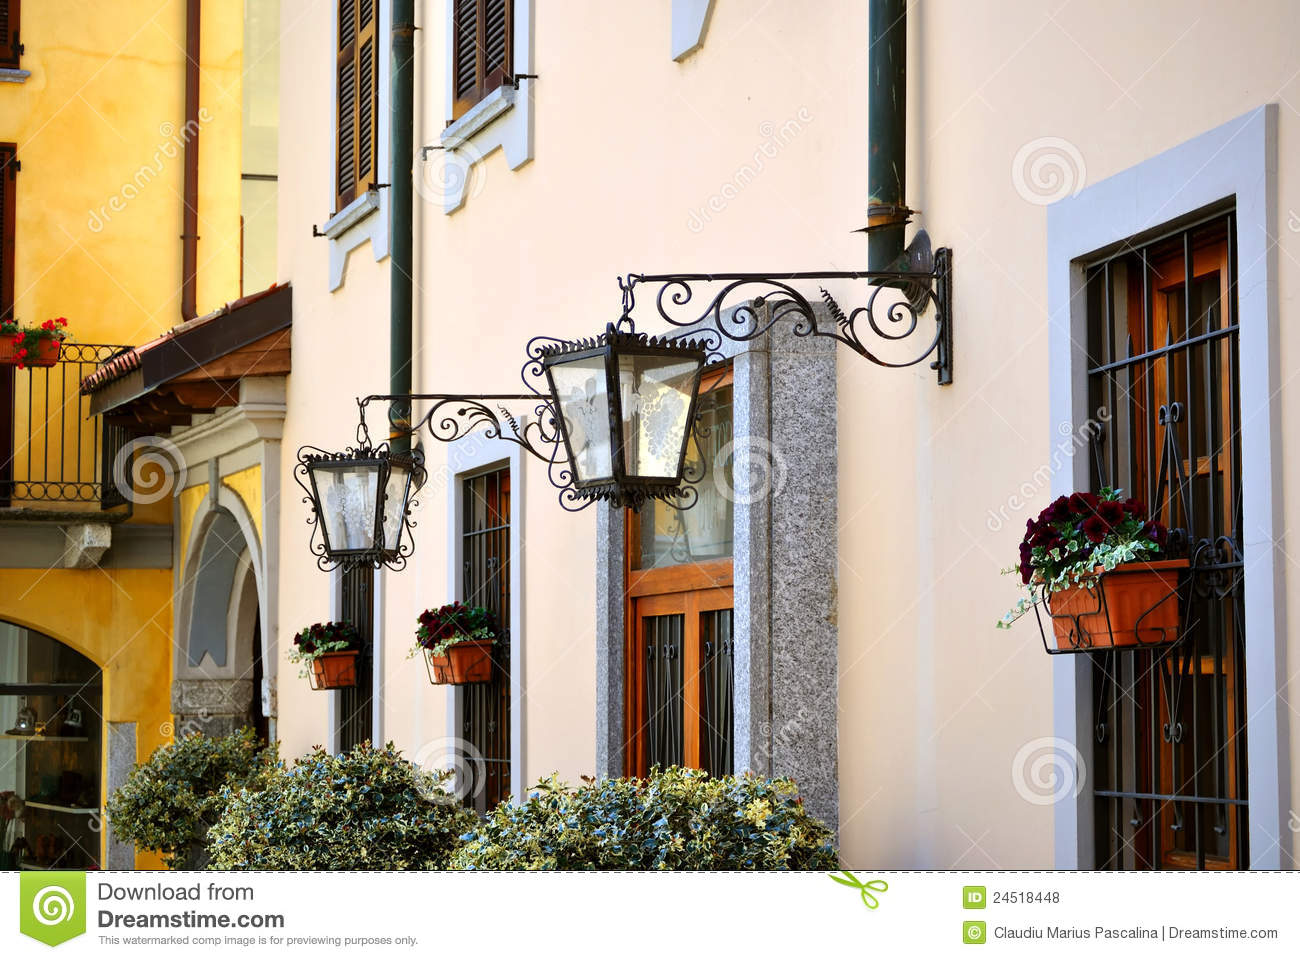 Street lamps on building wall, windows with flowers, architecture ...